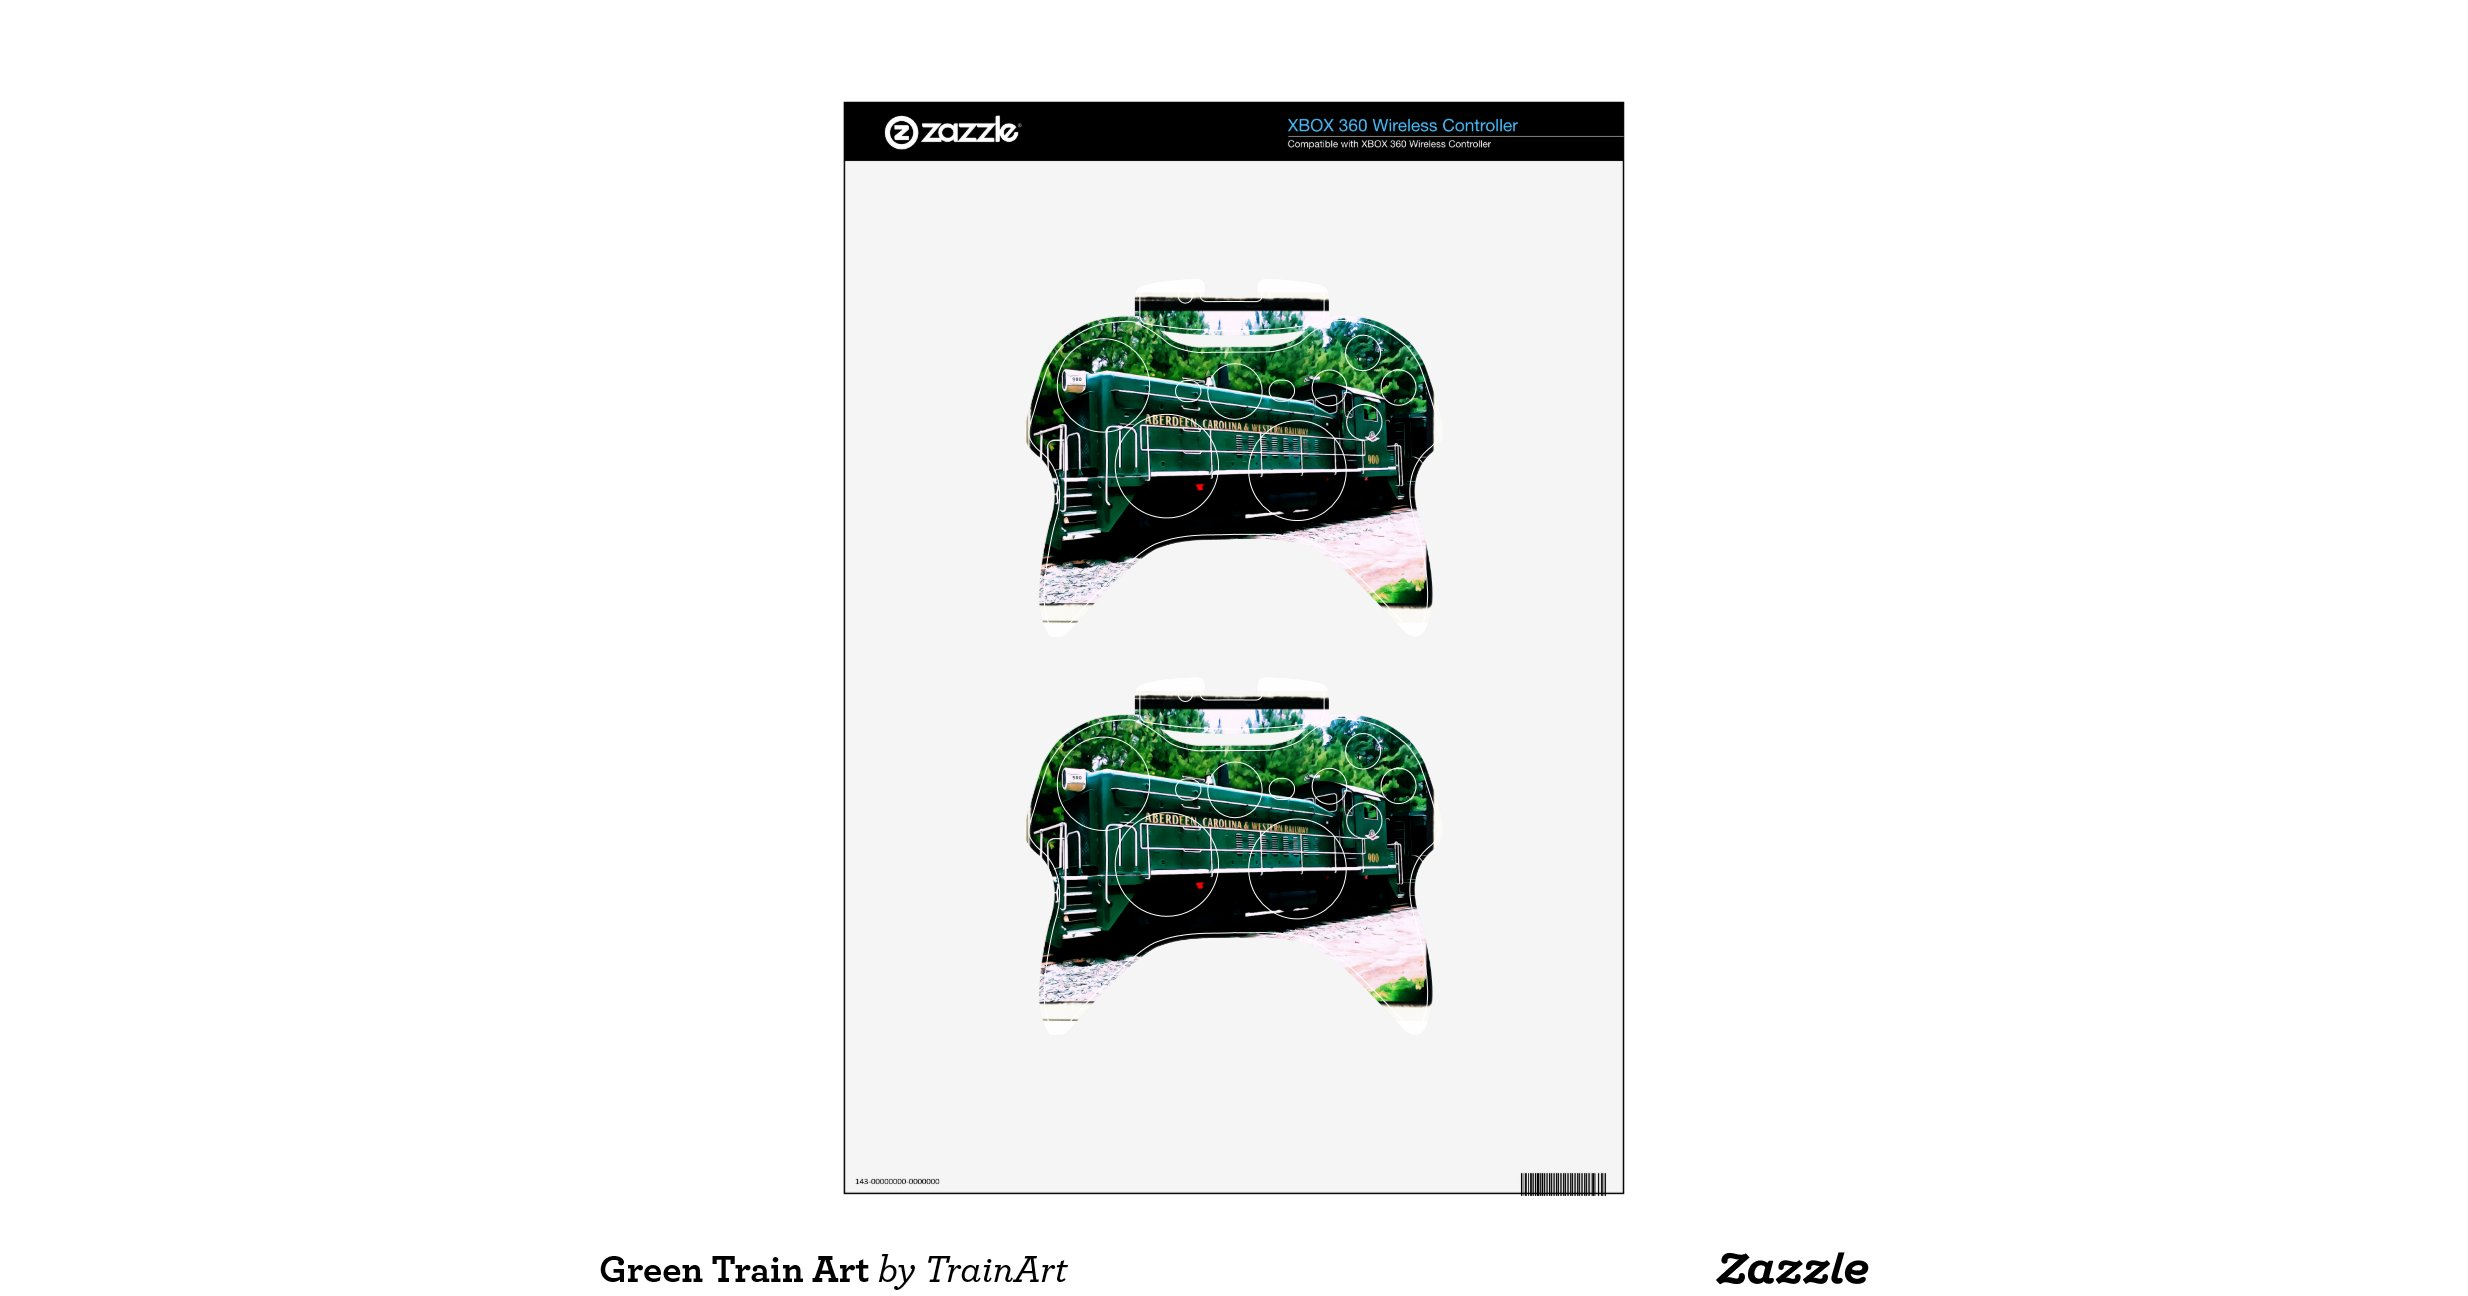 Xbox 360 wireless controller skin xbox 360 controller skins zazzle -  Jnvt0f Further Type 1 Diabetes Awareness Ribbon Skin 134723832968403970 Also Battery Cover For Xbox 360 Controller